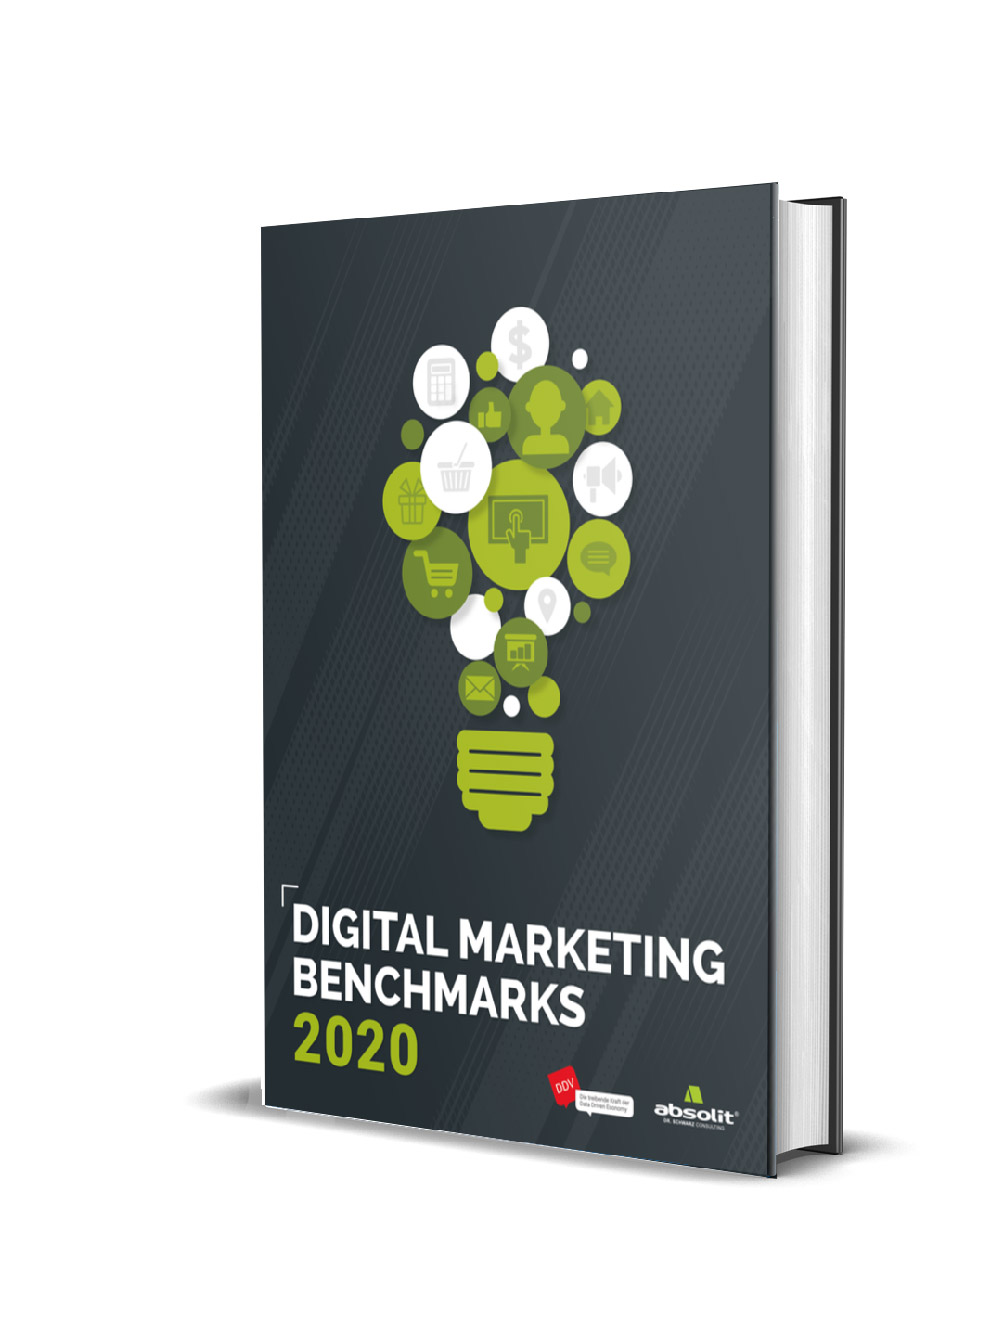 digital marketing benchmarks20 cover cover mockup - Digital Marketing Benchmarks 2020